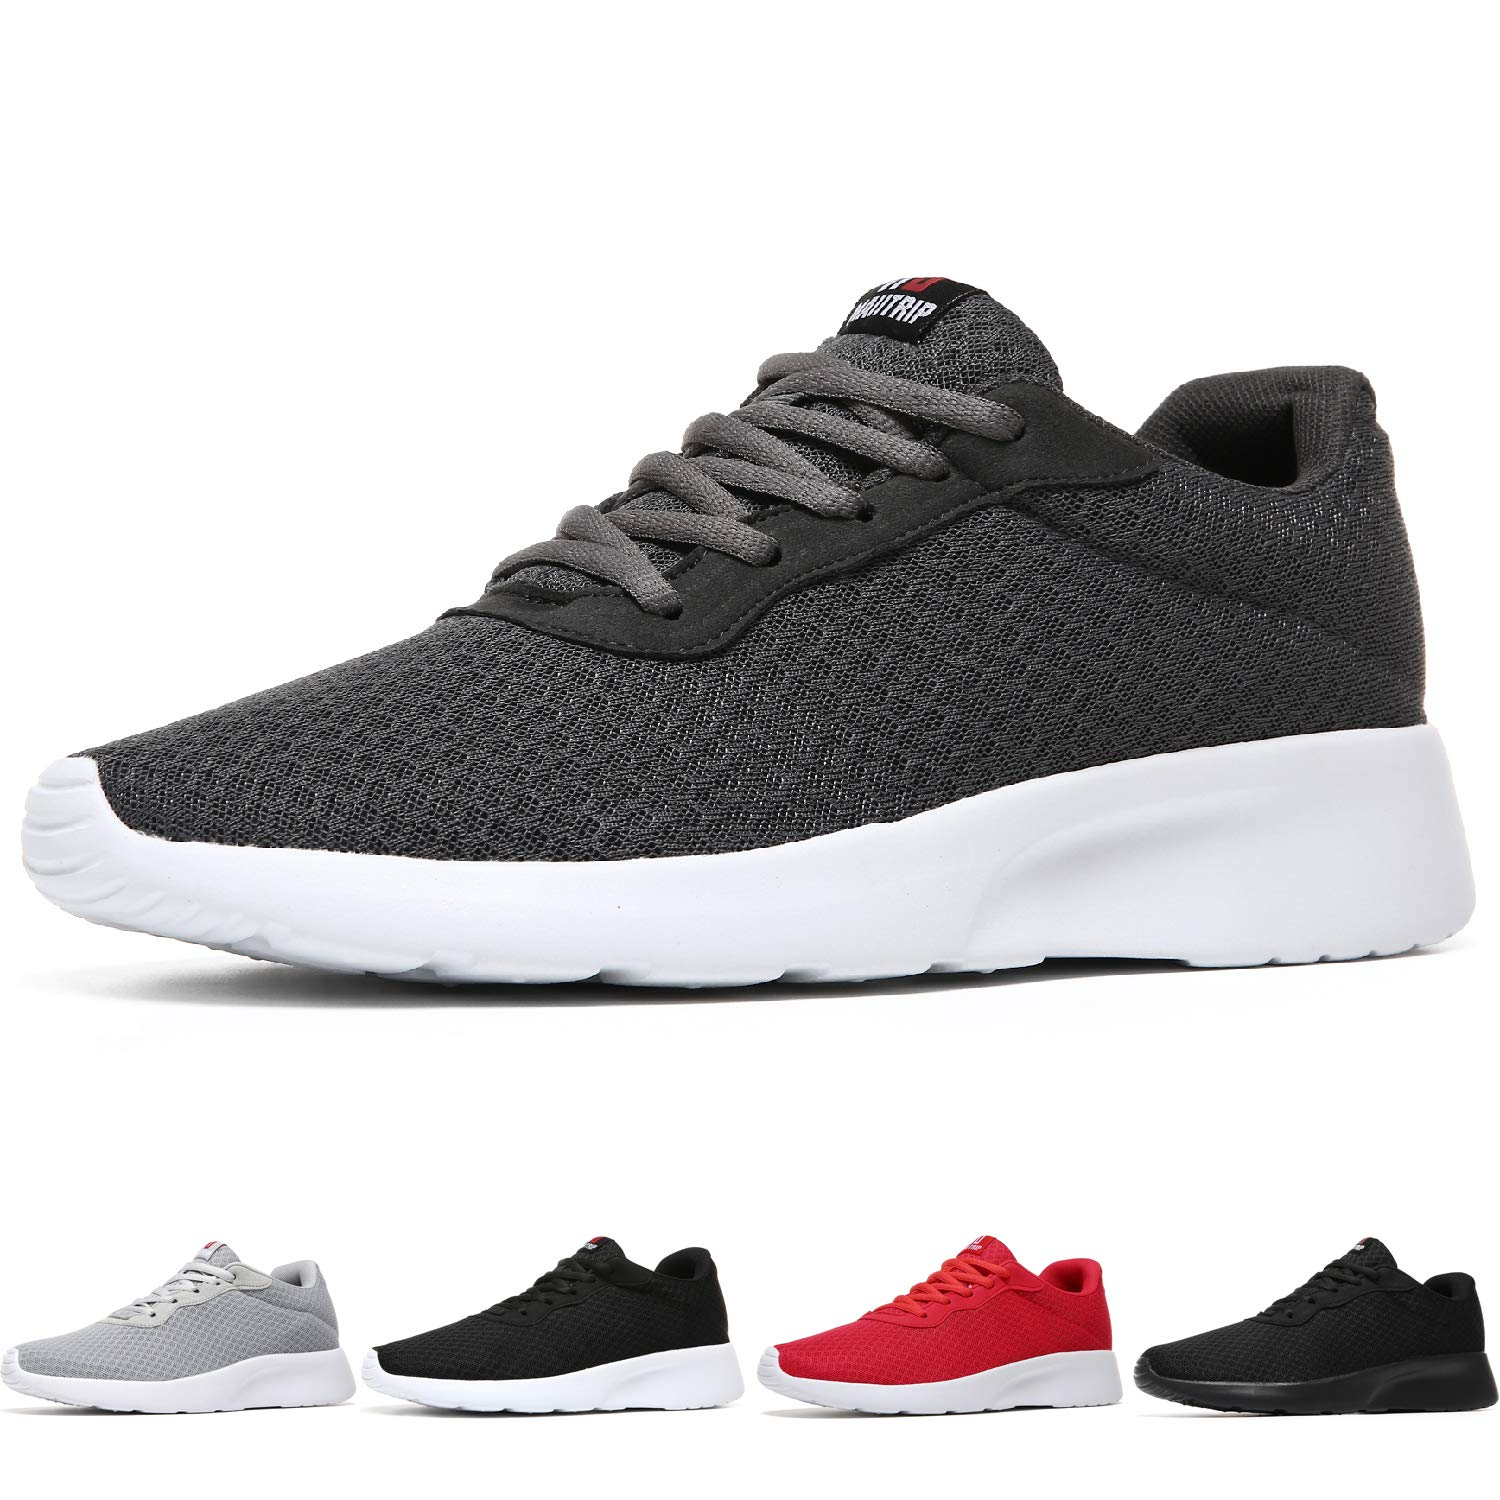 MAIITRIP Men's Running Shoes Sport Athletic Sneakers,CharcoalGrey/Gray,Size 7